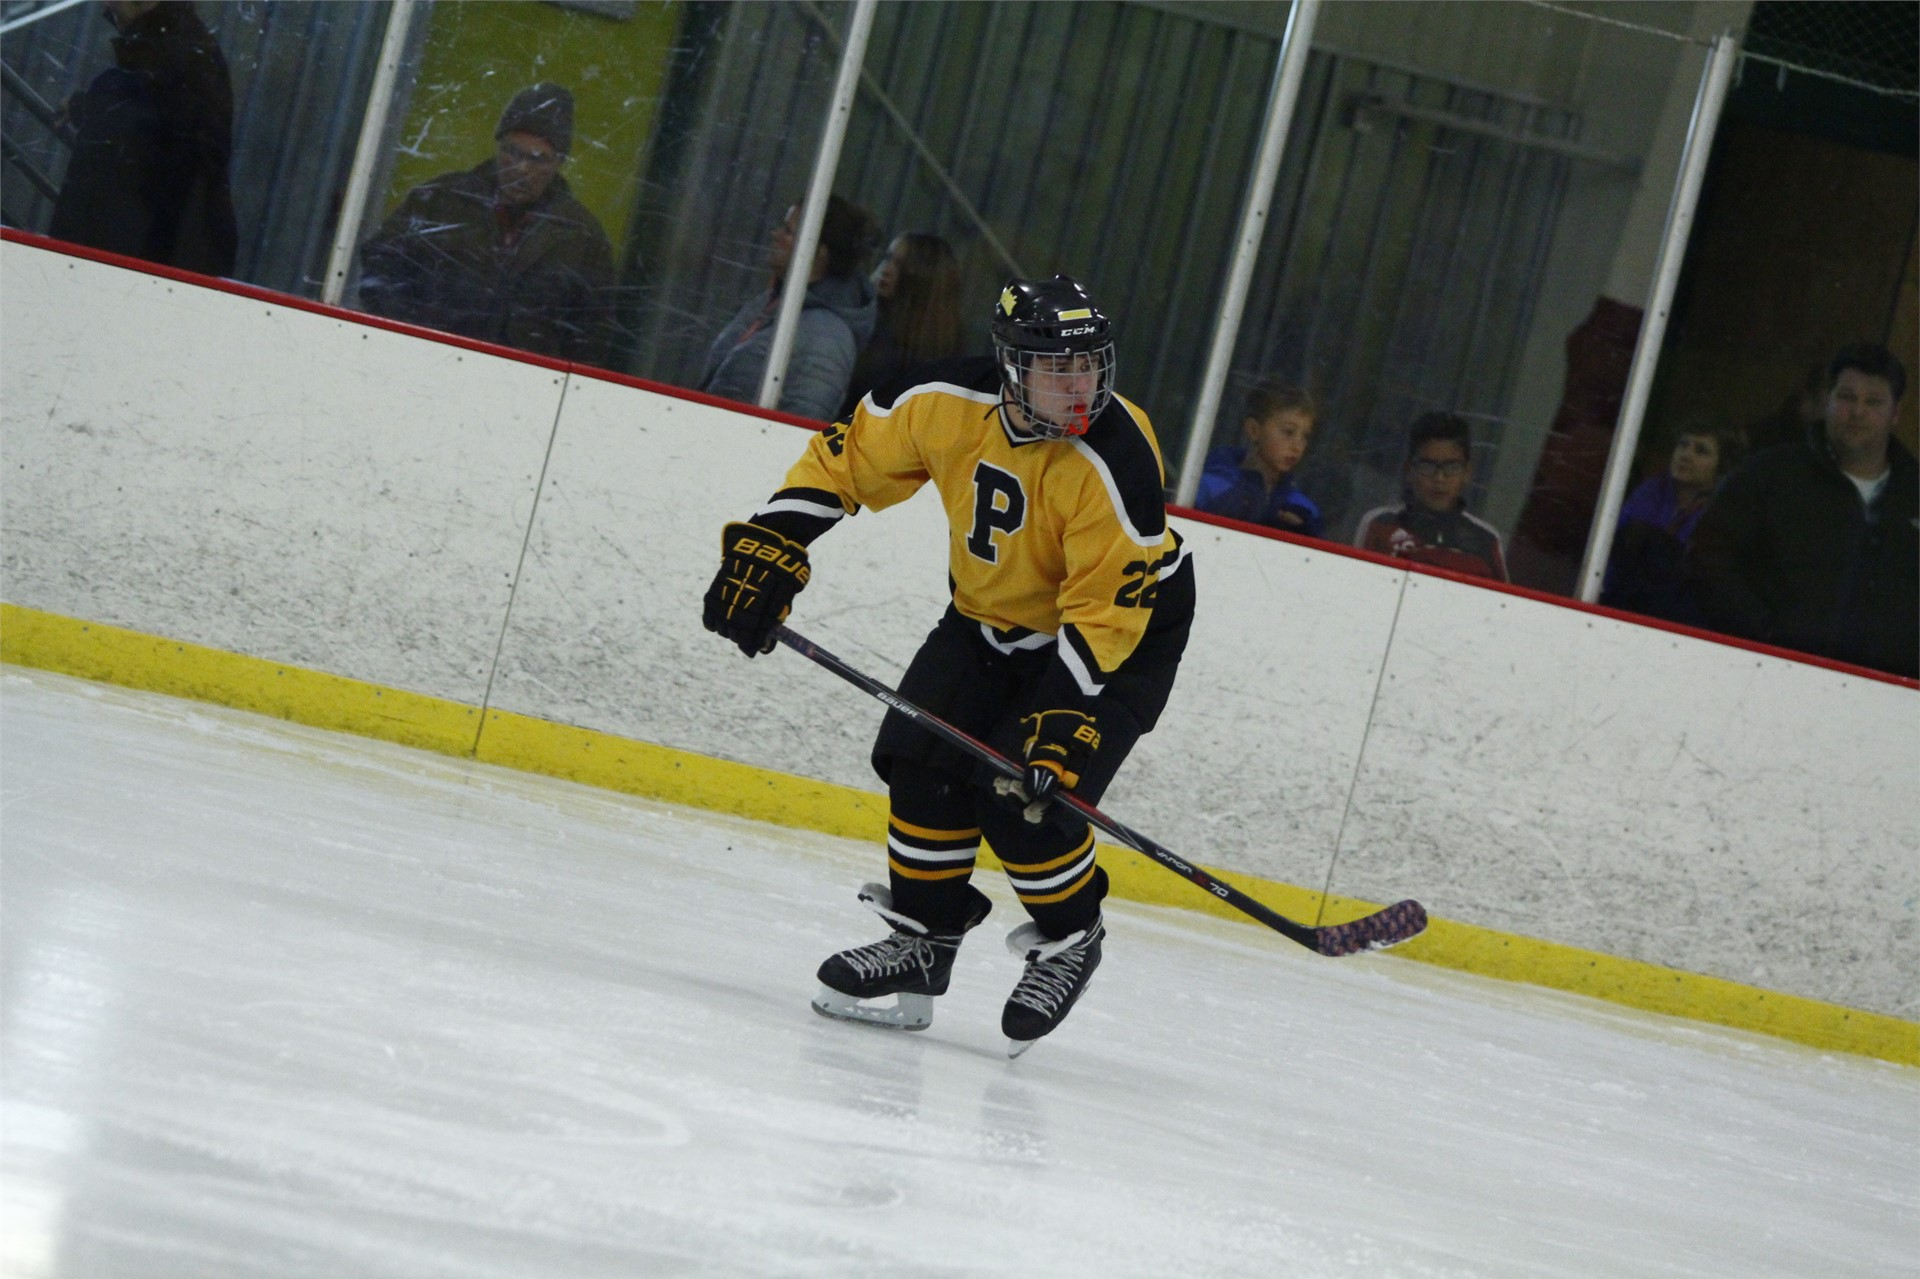 PHS student athlete skating down the ice